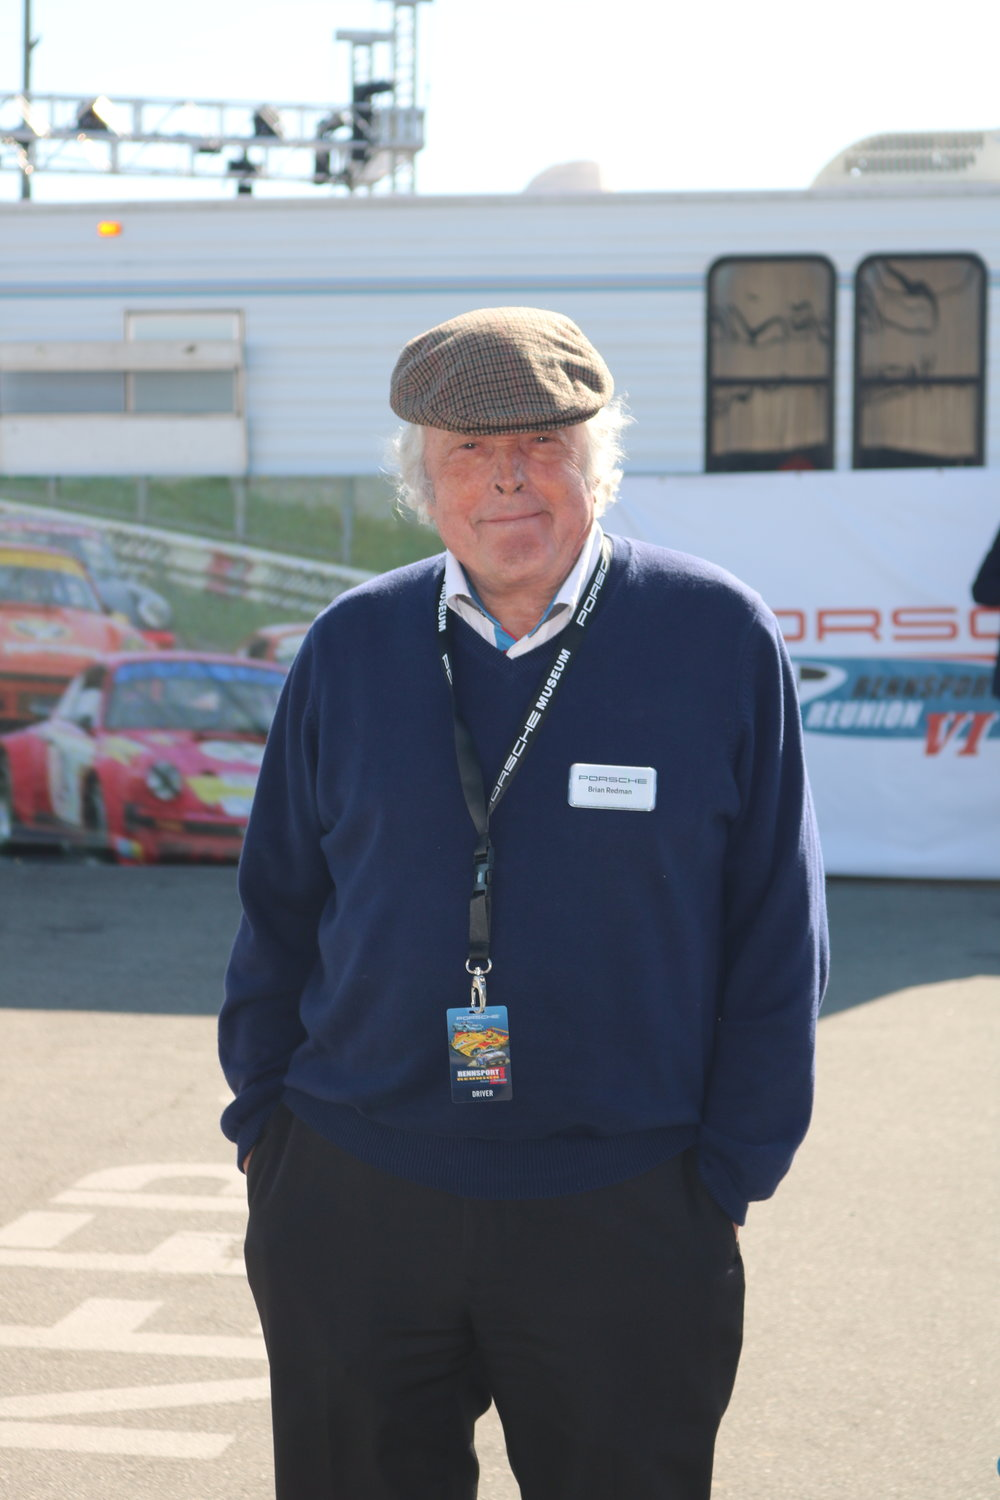 Porsche racing legend and Rennsport mastermind Brian Redman